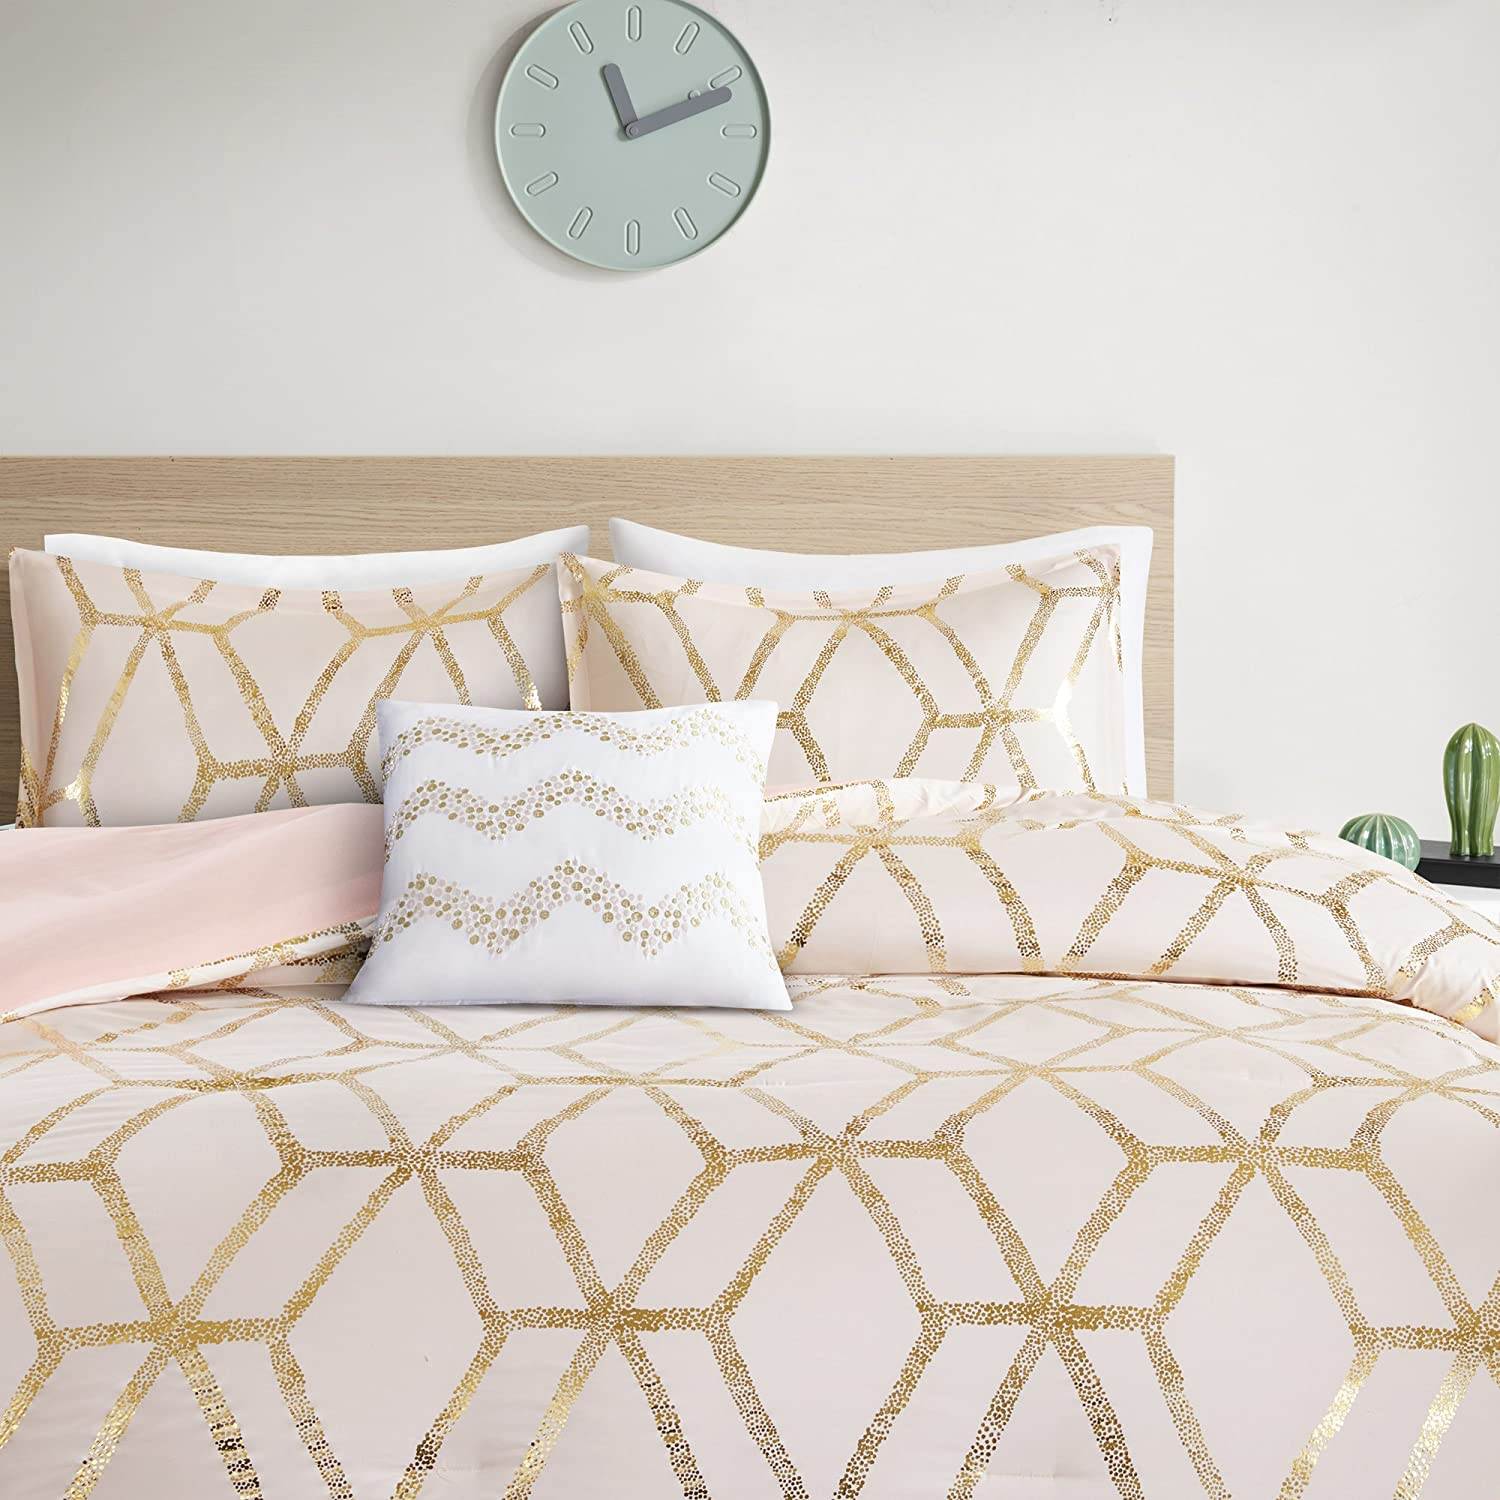 Comfort Spaces Vivian 3 Piece Comforter Set Ultra Soft All Season Lightweight Microfiber Geometric Metallic Print Hypoallergenic Bedding, Twin/Twin XL, Blush/Gold